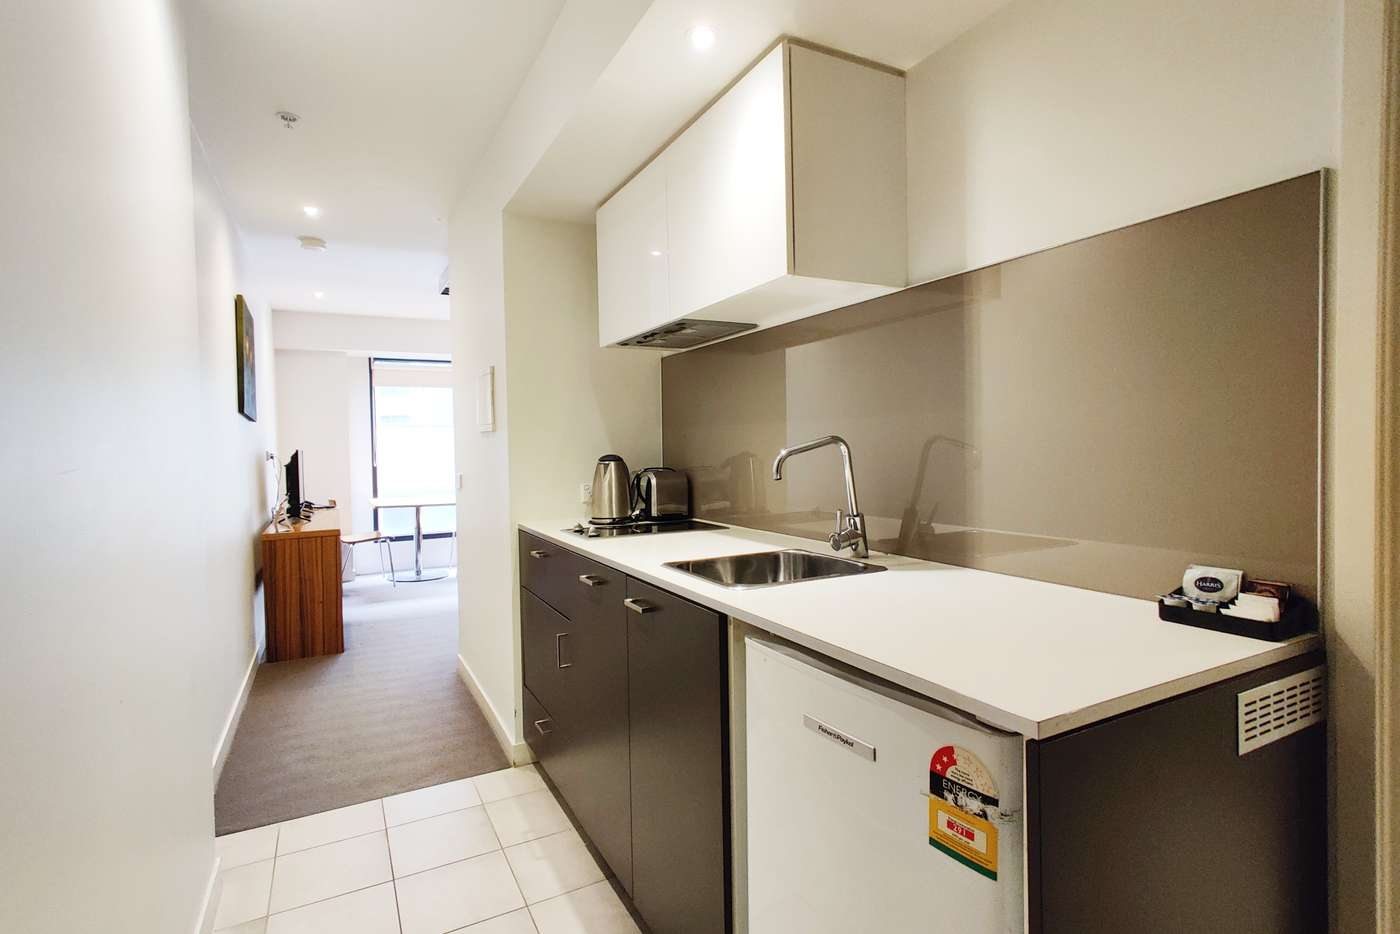 Main view of Homely apartment listing, 934/572 St Kilda Road, Melbourne VIC 3004